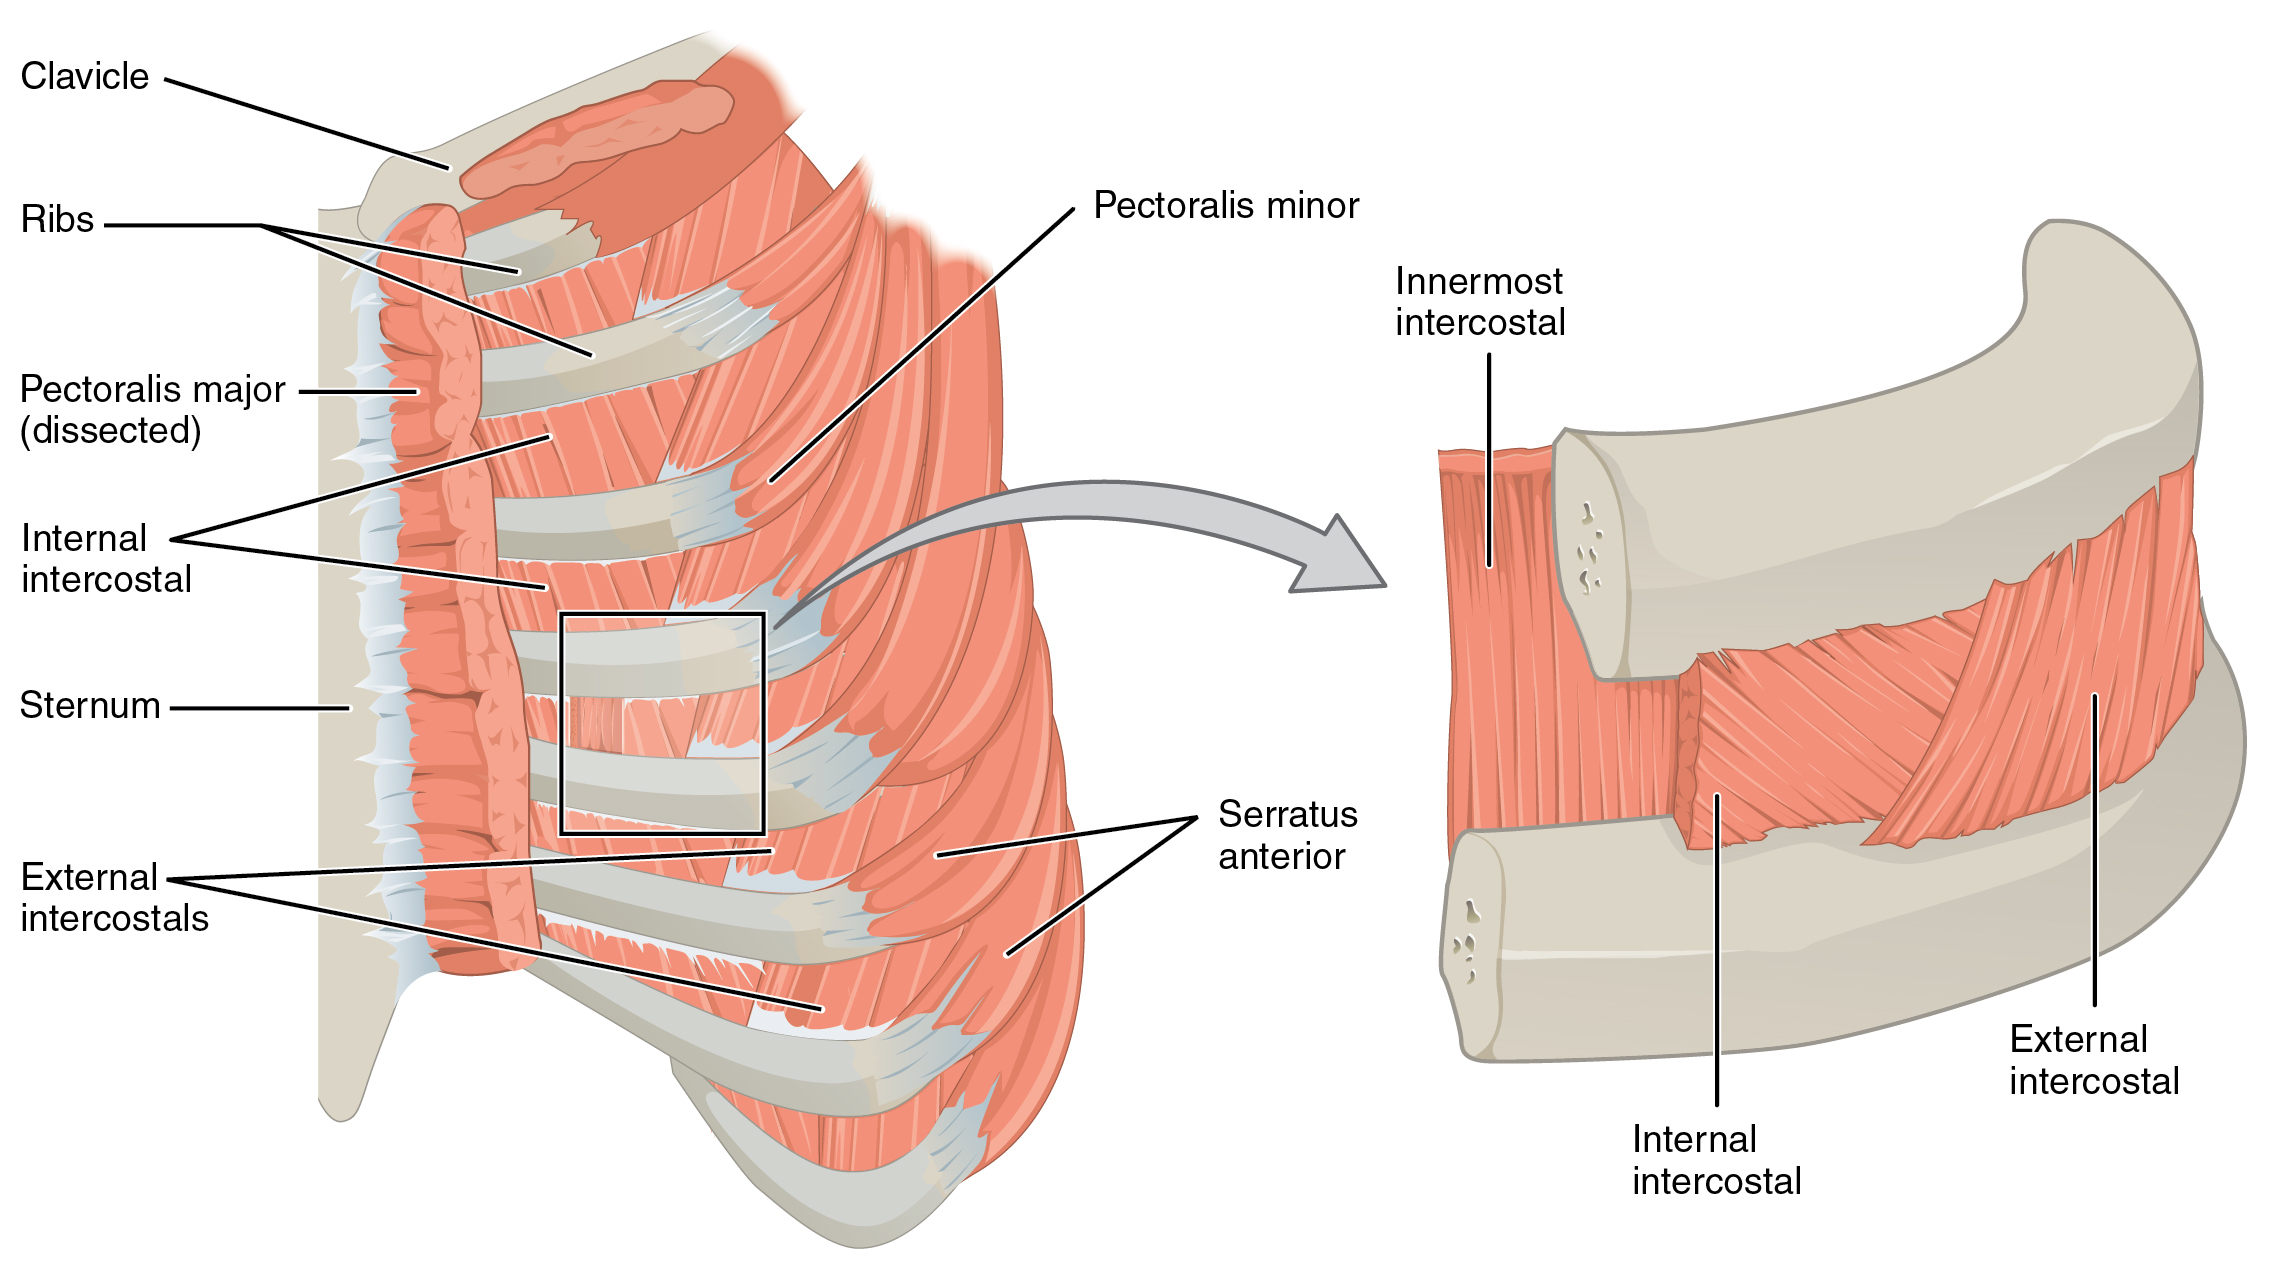 This figure shows the muscles in the thorax. The left panel shows the ribs, the major bones, and the muscles connecting them. The right panel shows a magnified view of the sternum and labels the muscles.